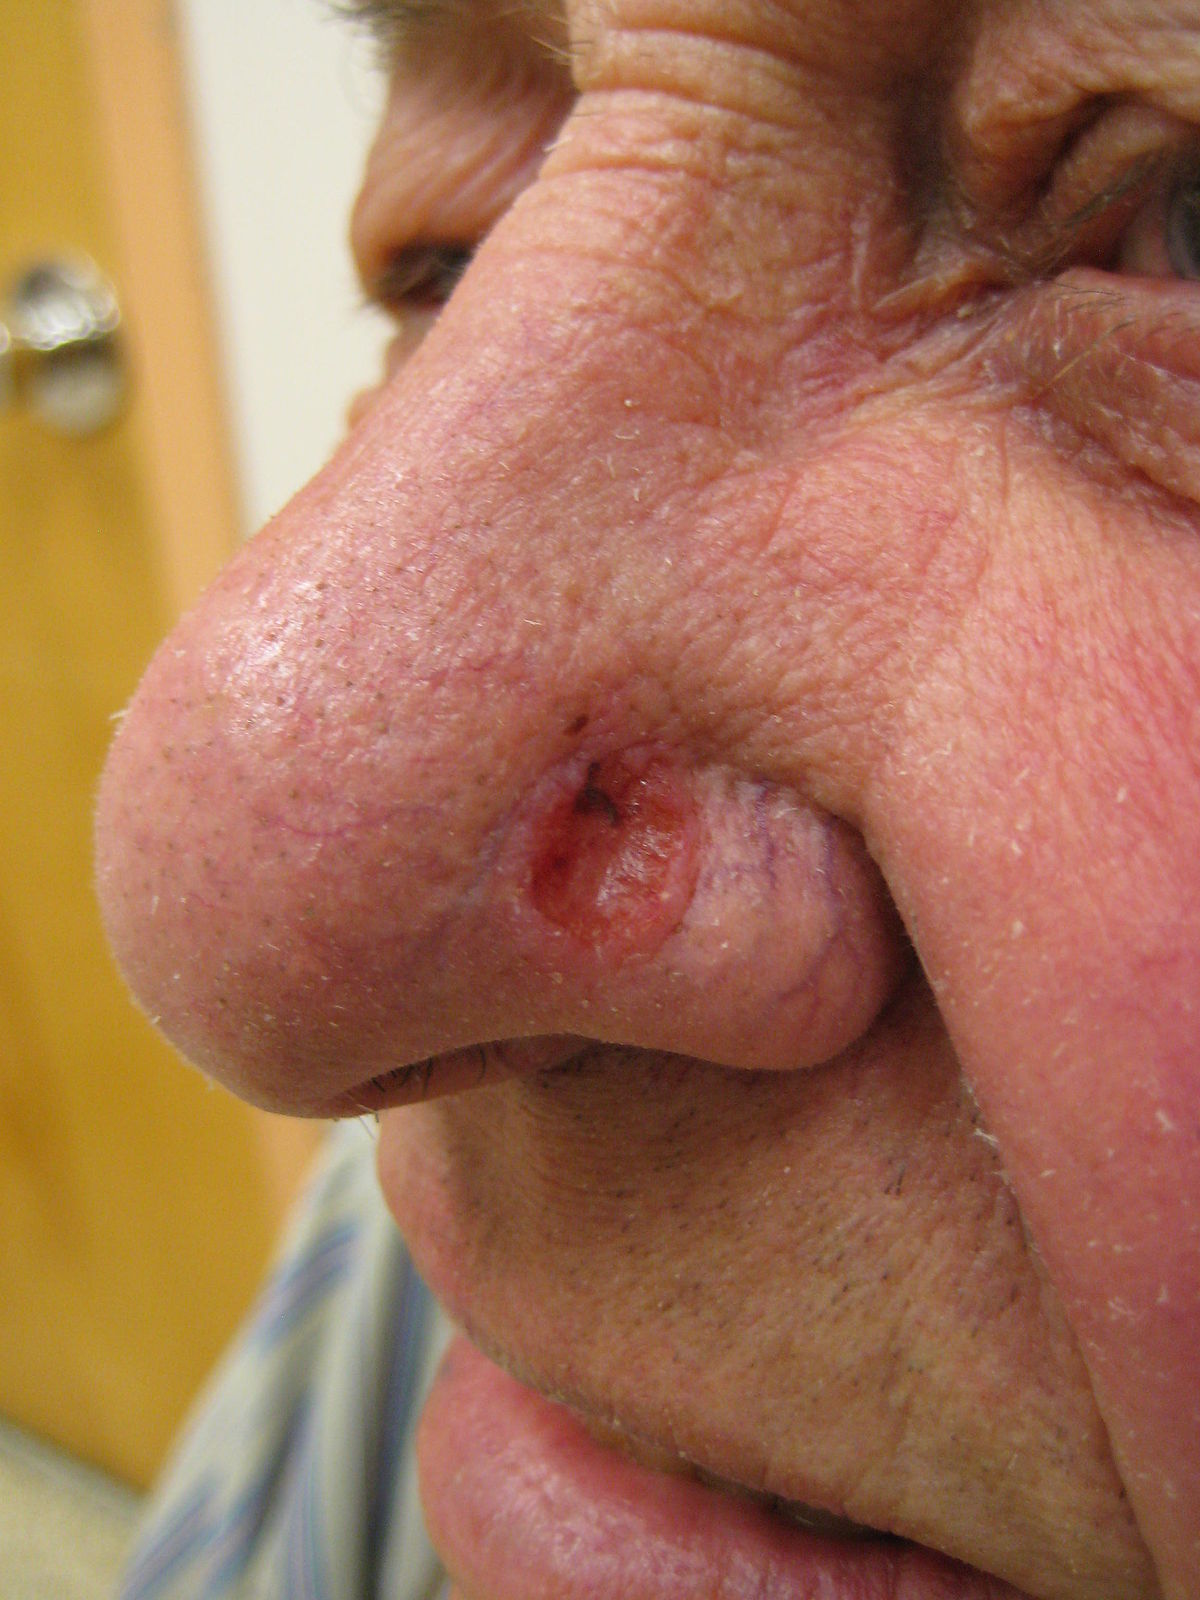 basal-cell carcinoma - wikipedia, Human Body